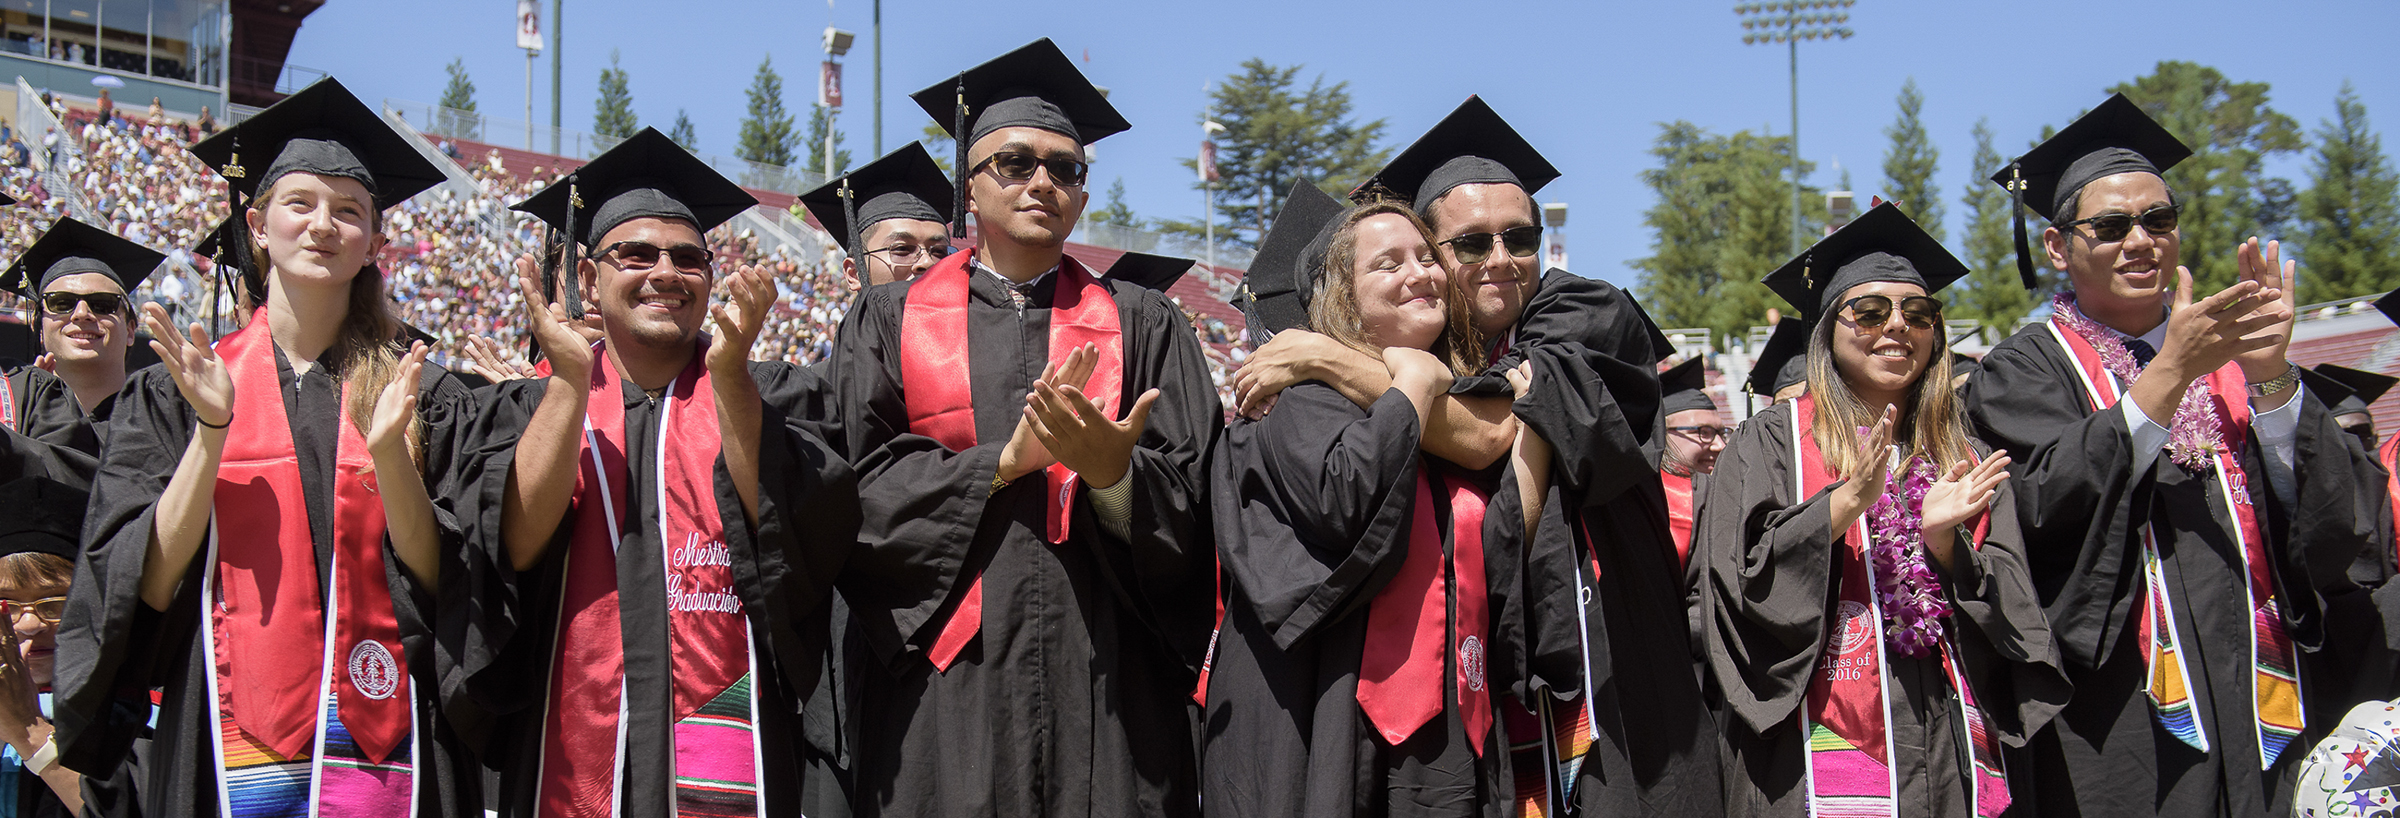 graduates at Stanford 125th Commencement Ceremony, Stanford Stadium.